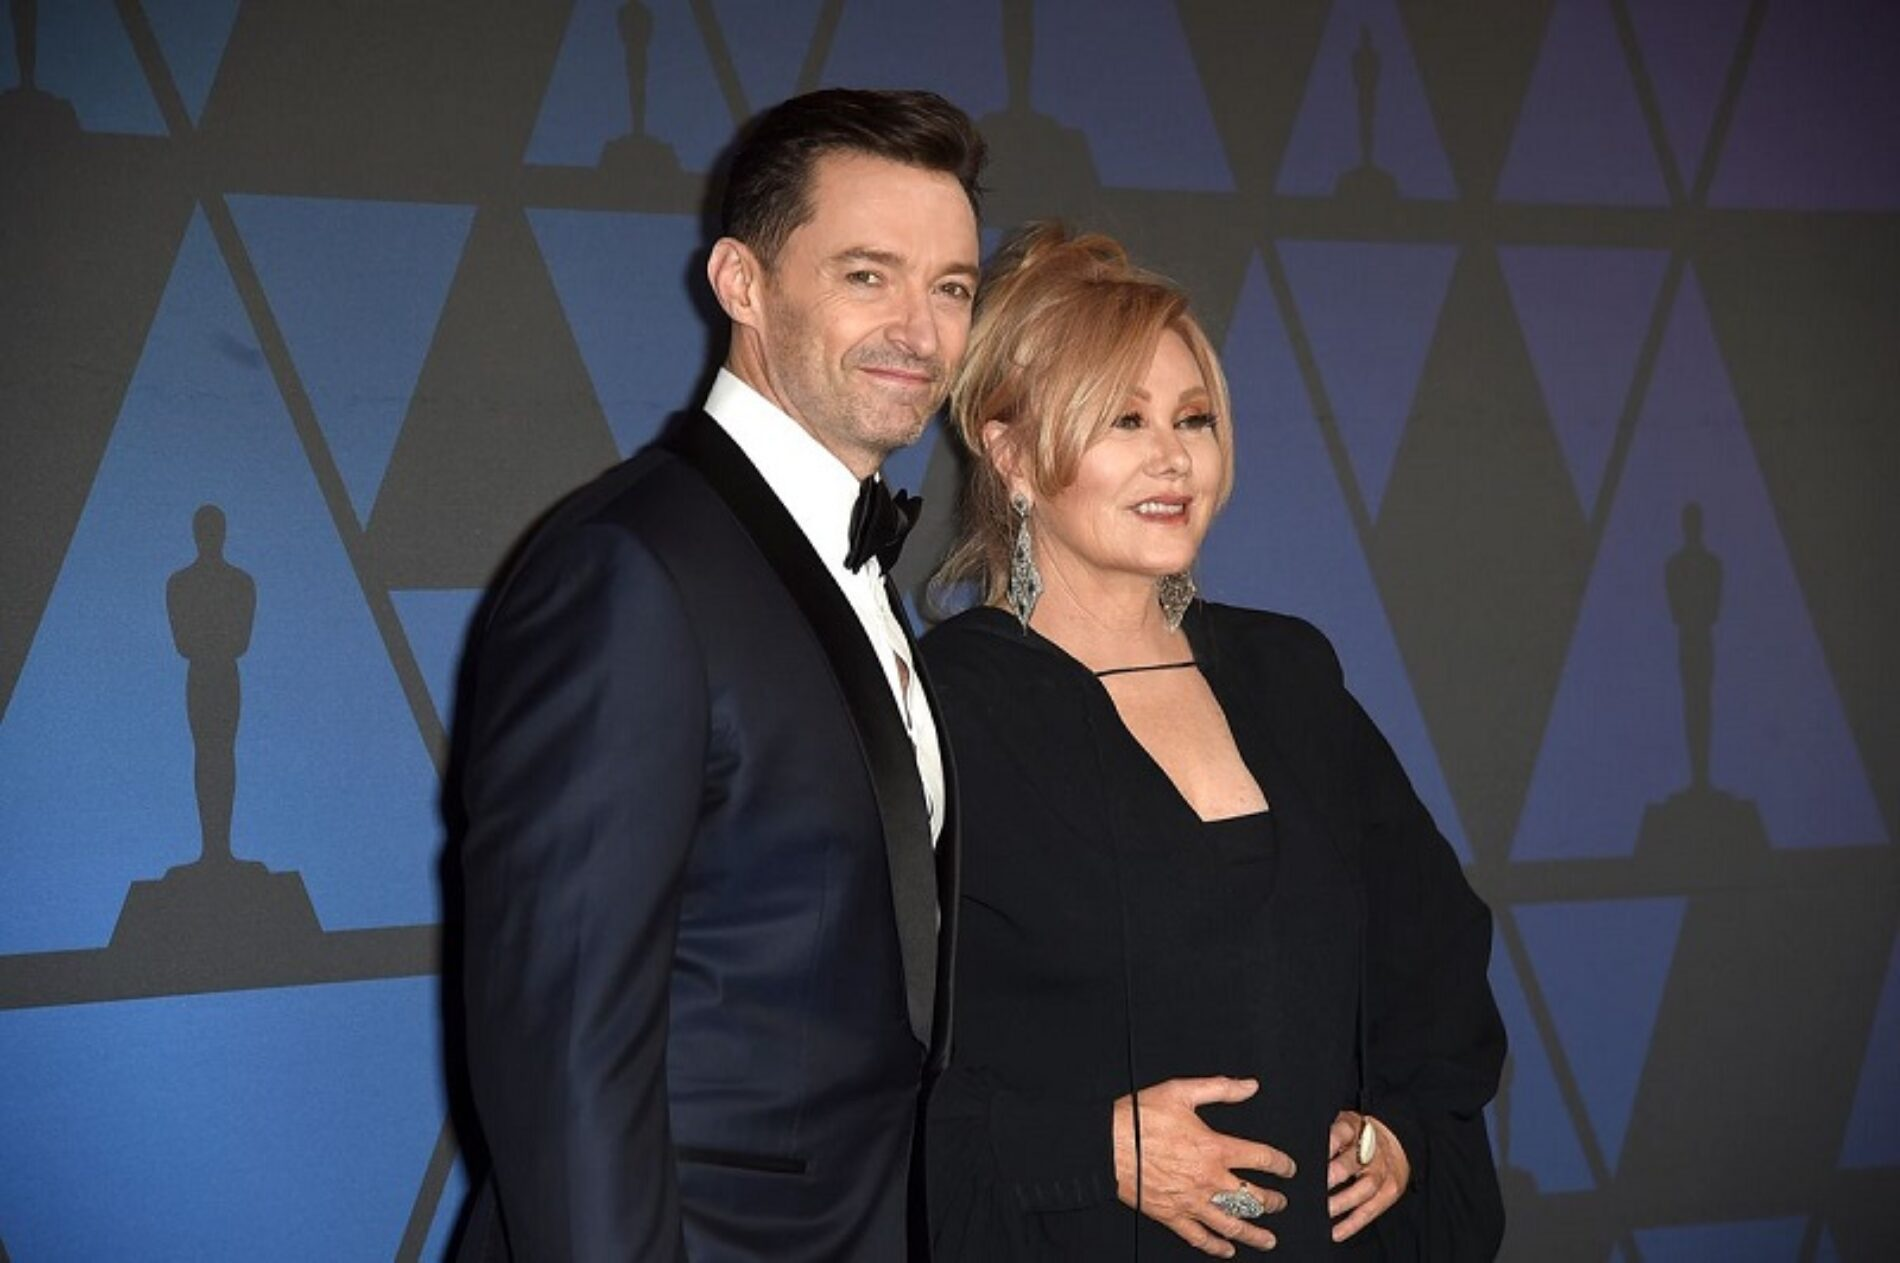 """Hugh Jackman's Wife has something to say about the """"Mean-Spirited"""" Gay Rumors surrounding her Husband"""